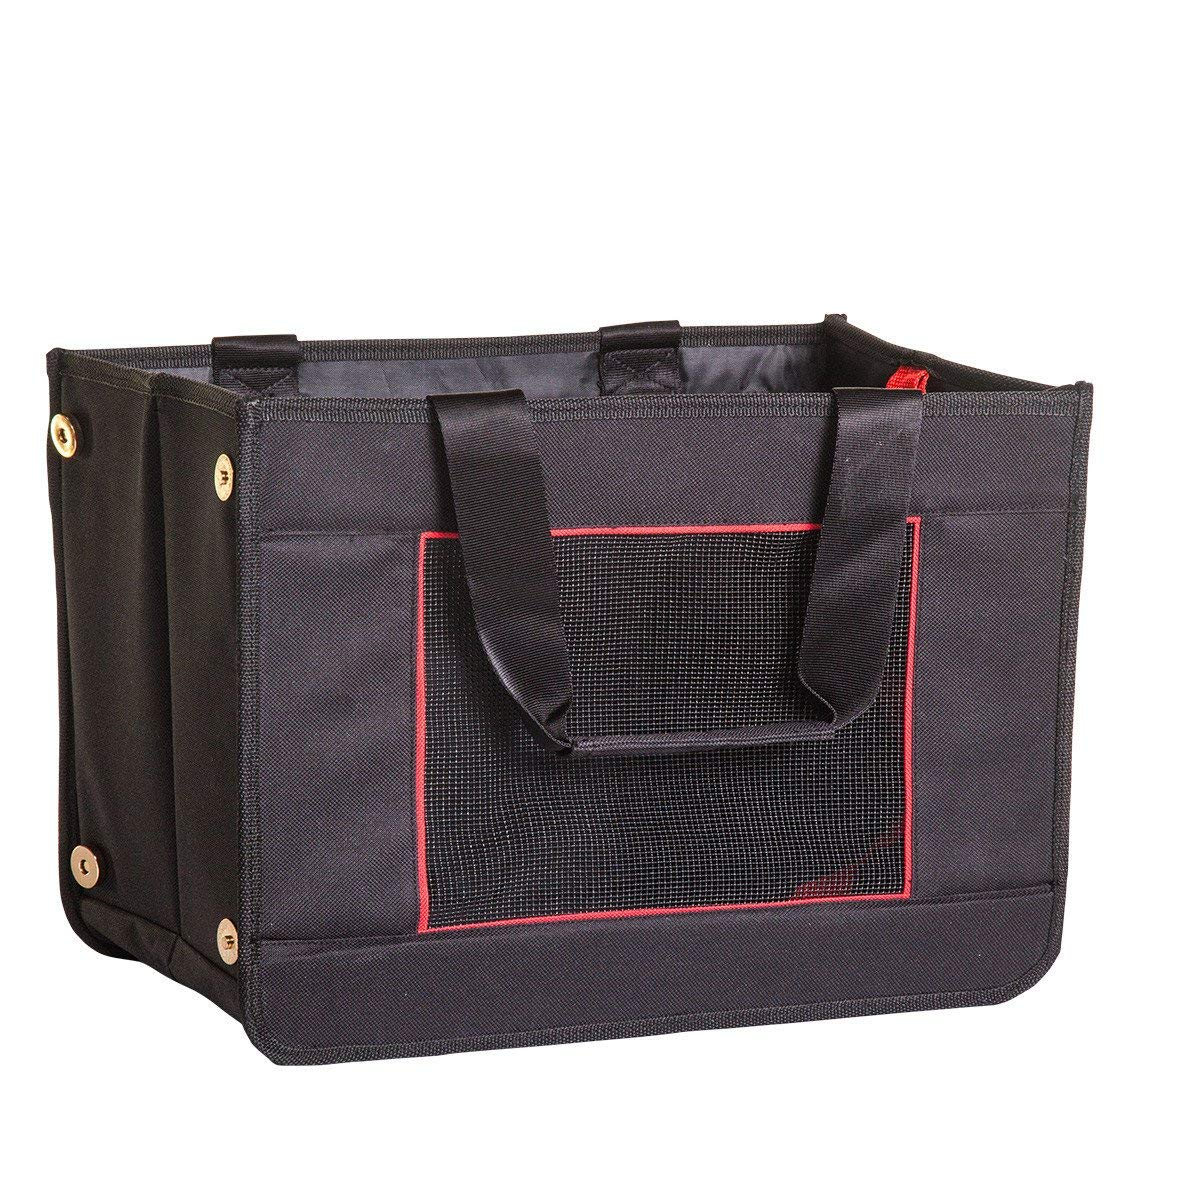 Buggy Baggy, The Best Innovative Solution for Safe and Easy Shopping